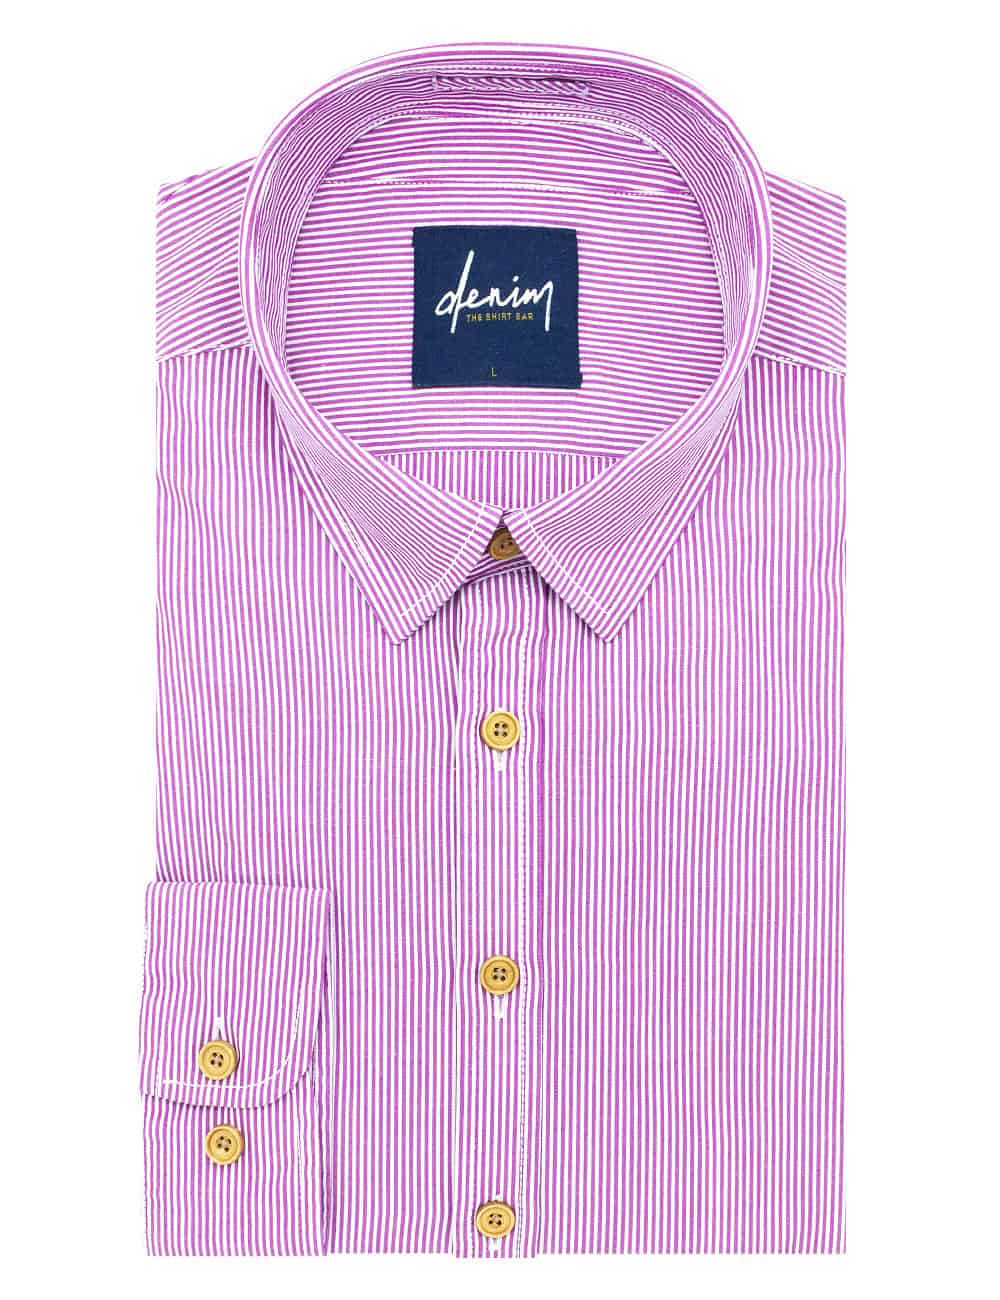 RF Pink and White Stripes Denim Collection 100% Cotton Long Sleeve Single Cuff Shirt RF27B4.5